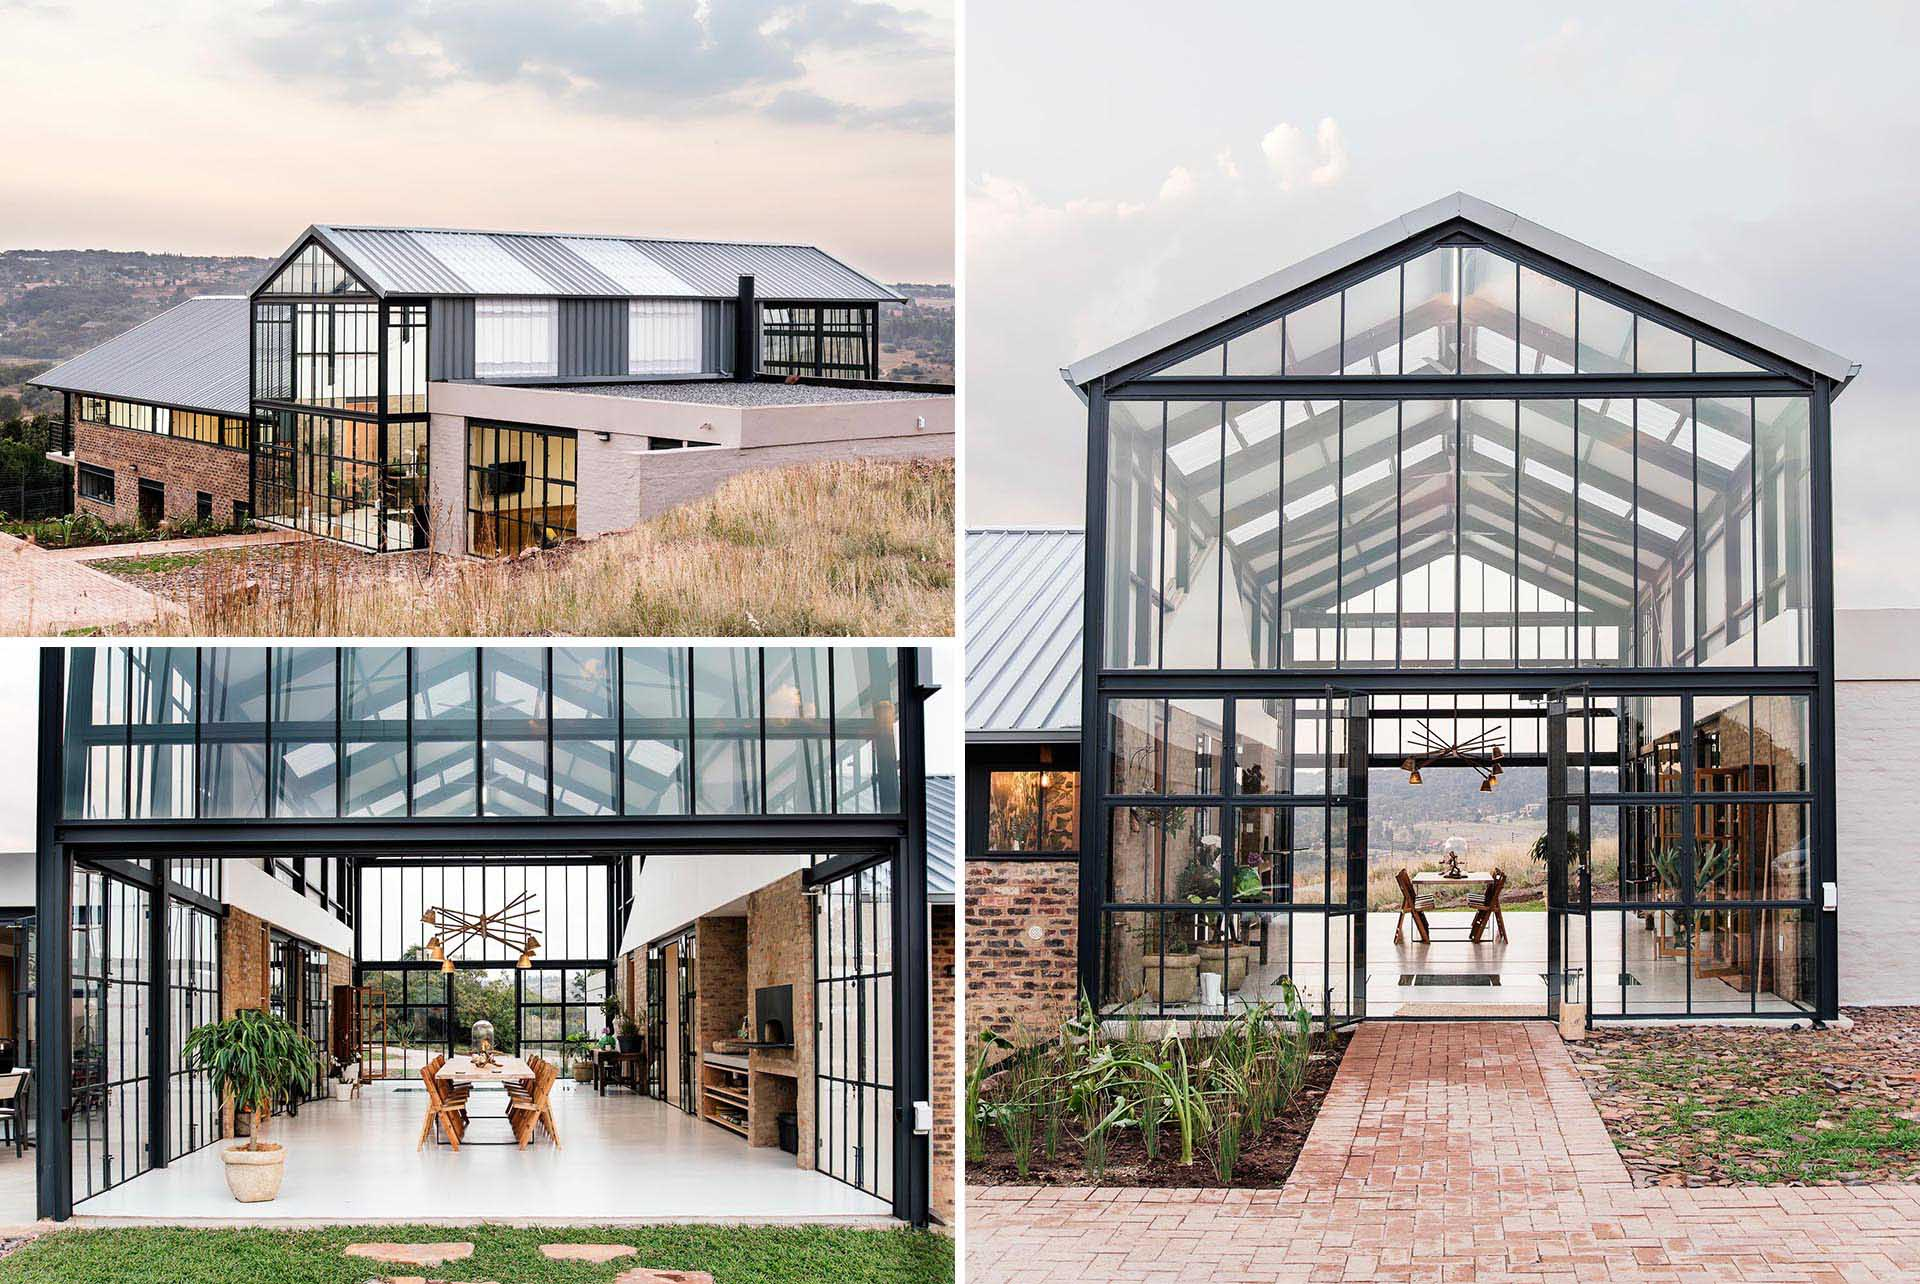 Key to the design of the home is the conservatory, which has been built with solid and translucent roof sheeting and sufficient insulation to optimize passive climate control.